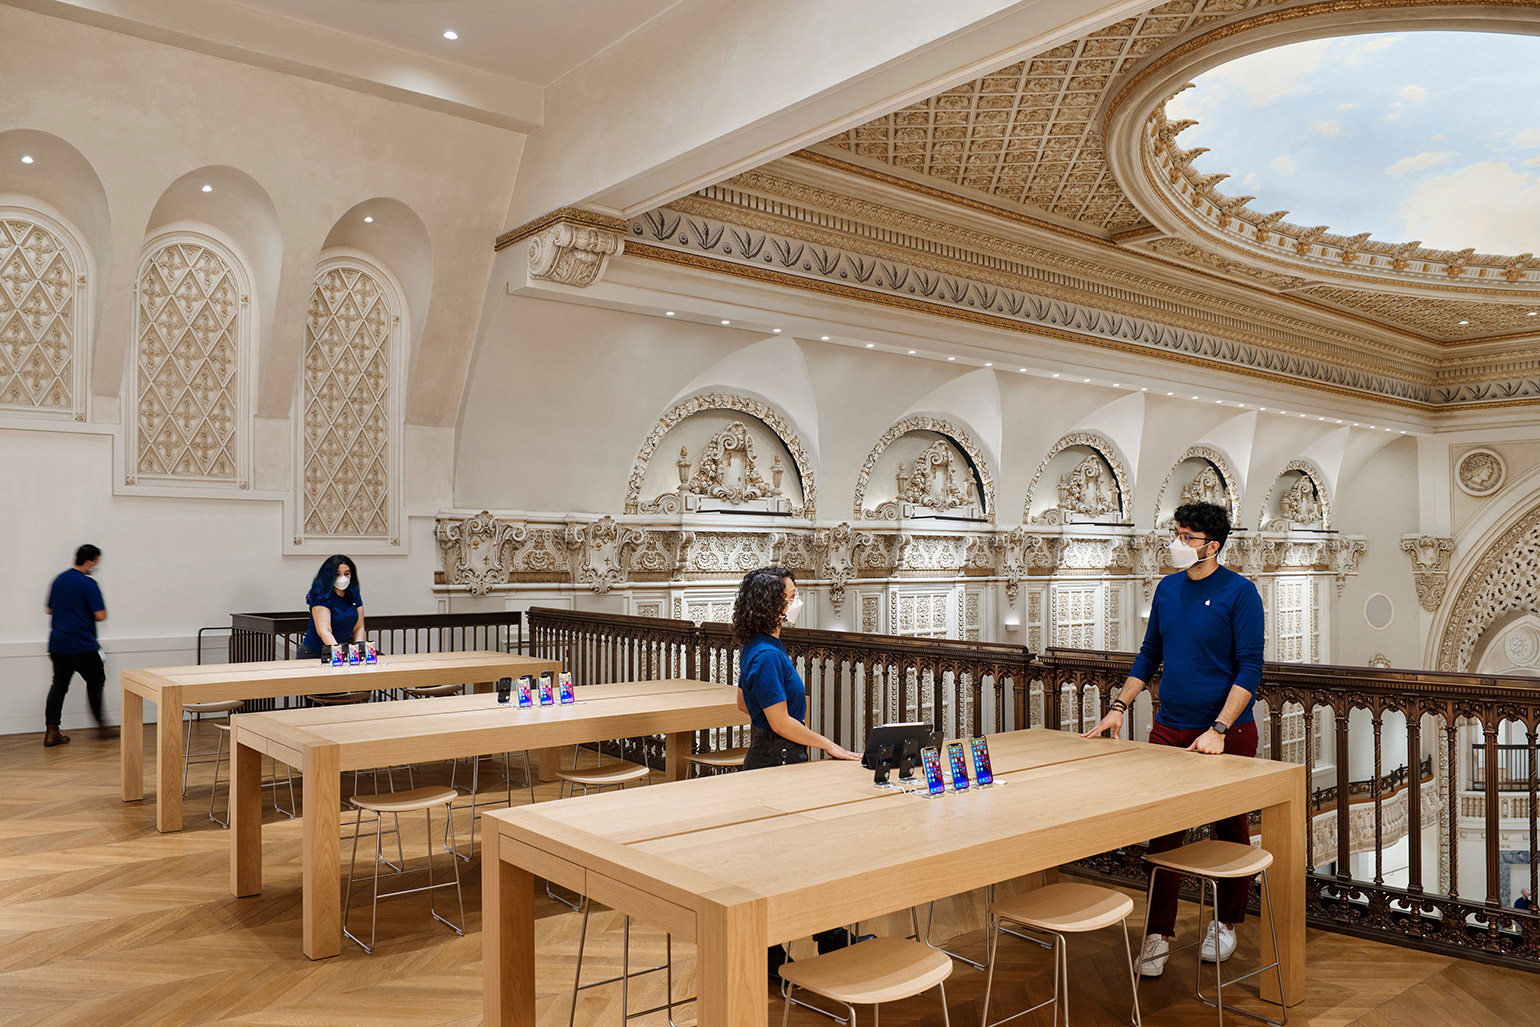 New Apple Store by Foster + Partners Opens in Historic Tower Theater in Los Angeles